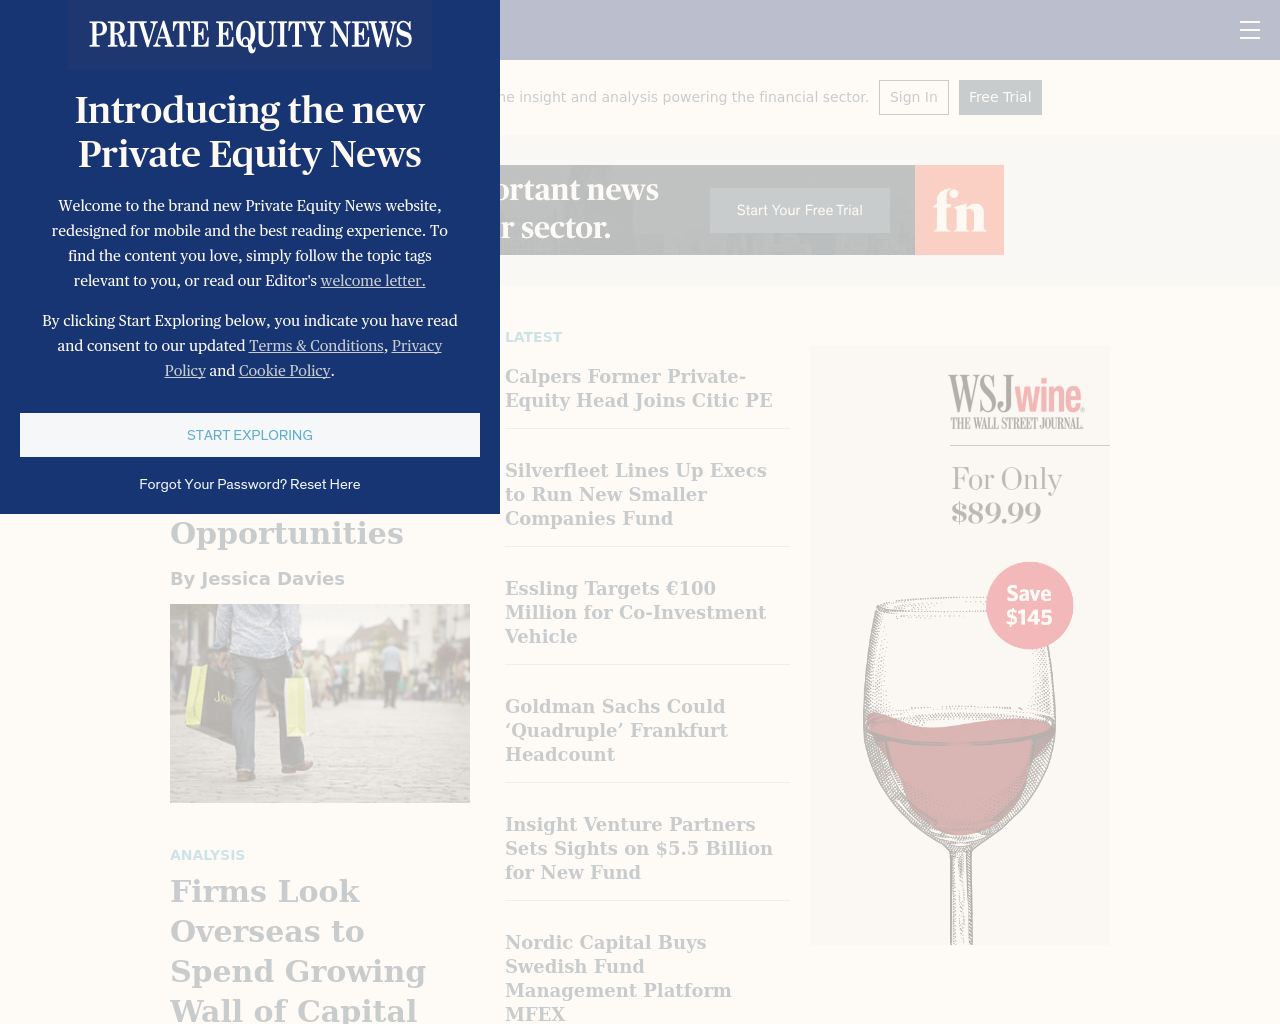 Private-Equity-News-Advertising-Reviews-Pricing